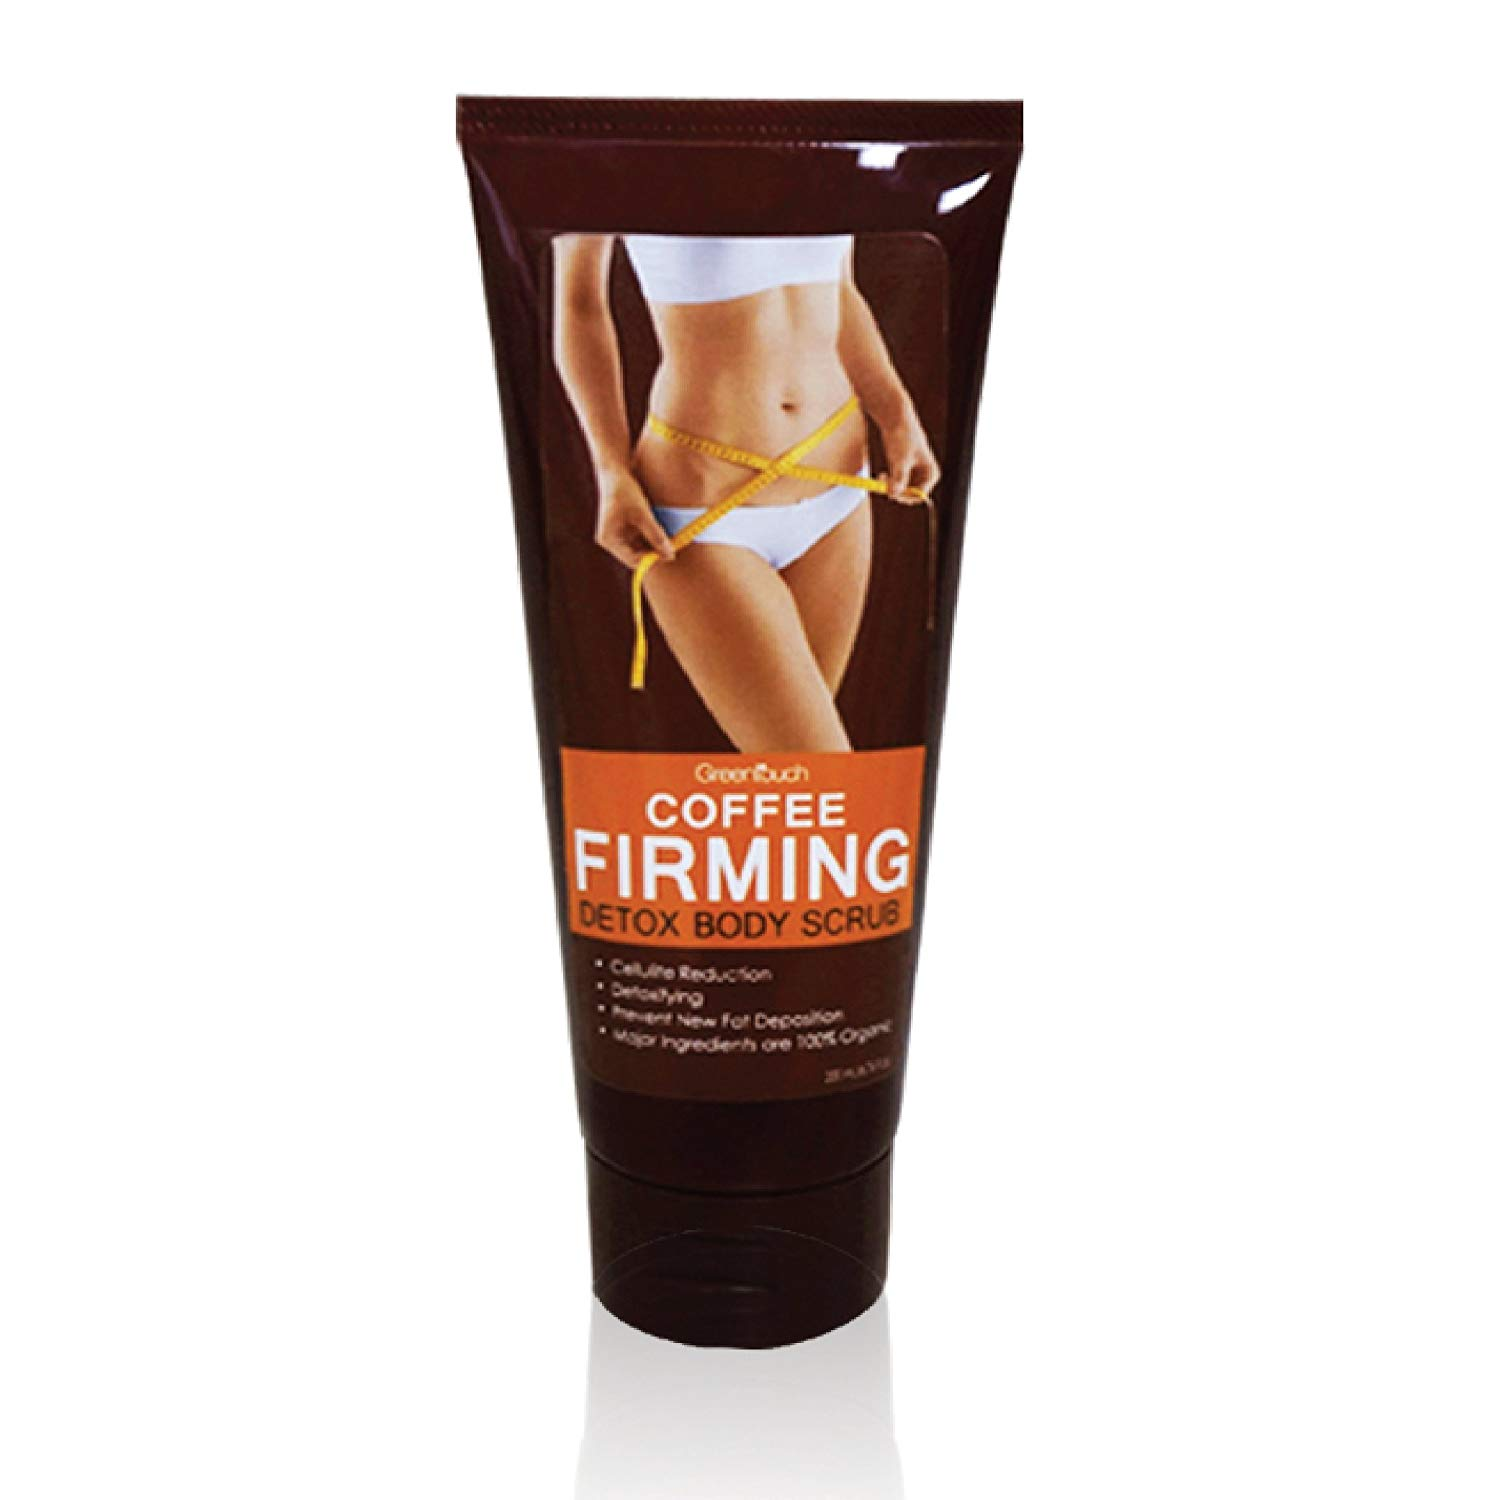 Organic Coffee Firming Detox Body Scrub for Skin Cleansing and Firming by Greentouch | Natural Skin Exfoliating & Scrubbing, Cellulite Reduction, Toning, Slimming, Tightening & Rejuvenating | Set of 1